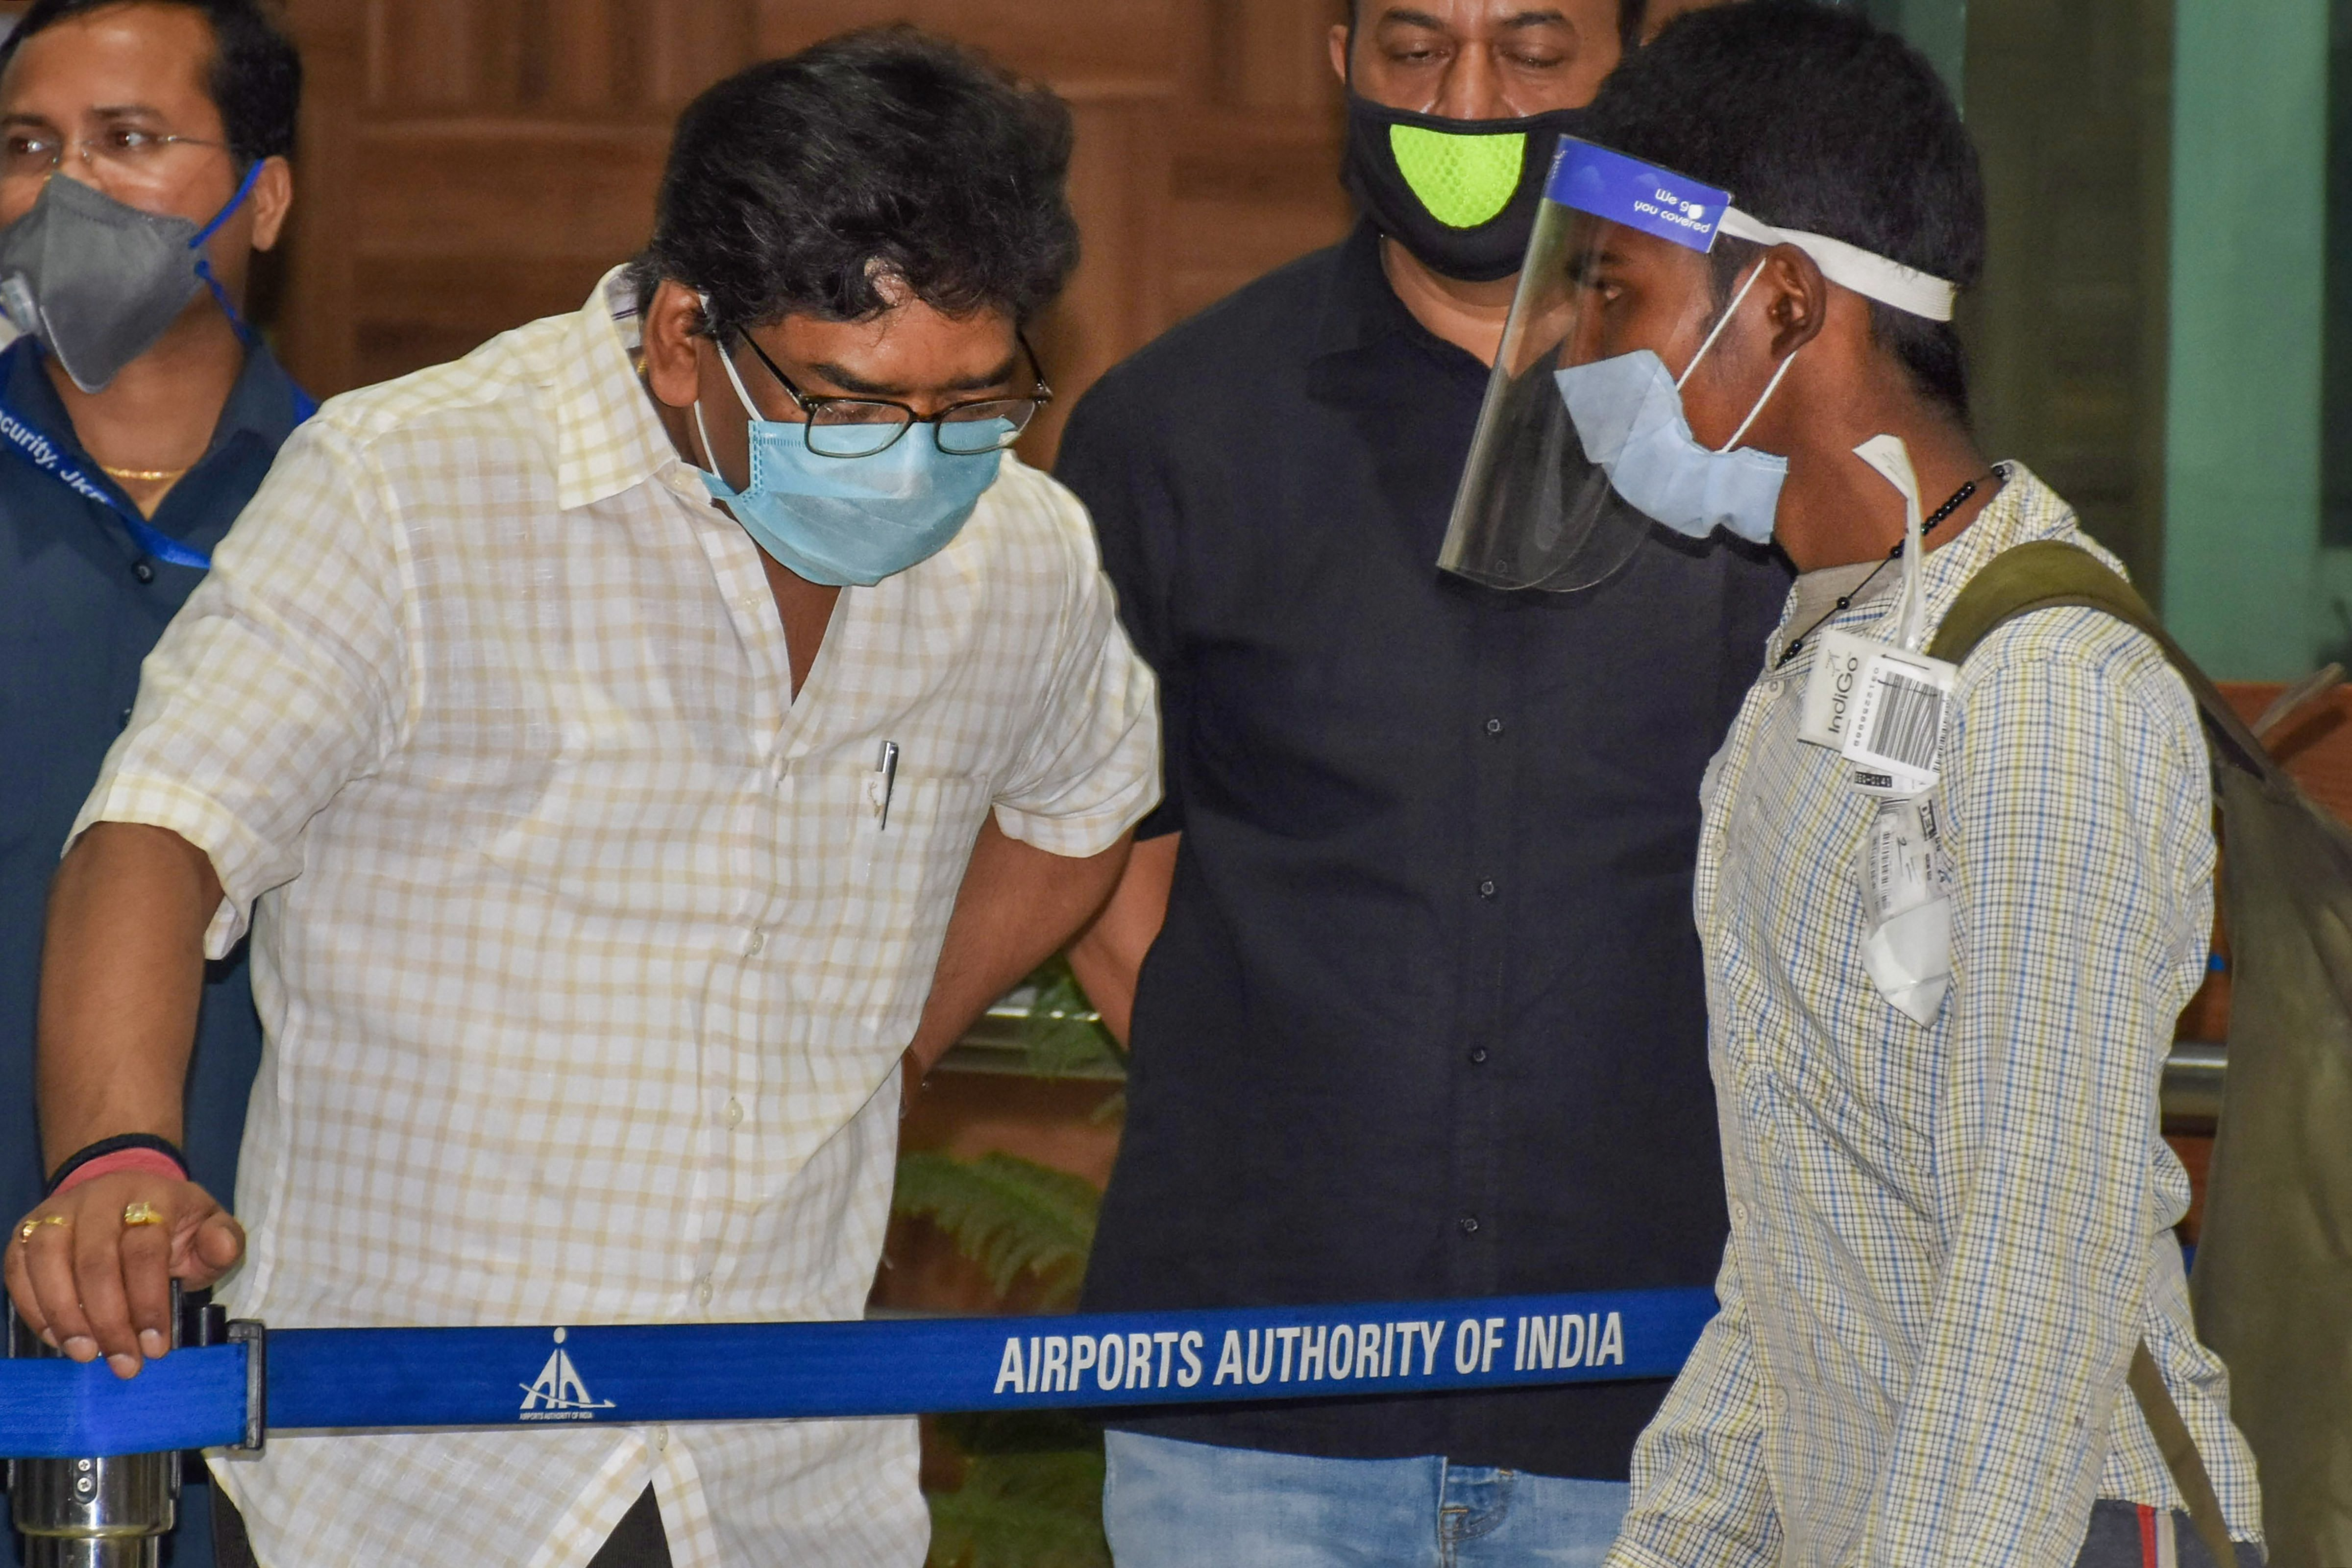 Jharkhand chief minister Hemant Soren interacts with a migrant worker as he arrives at Birsa Munda International Airport in Ranchi on Friday.